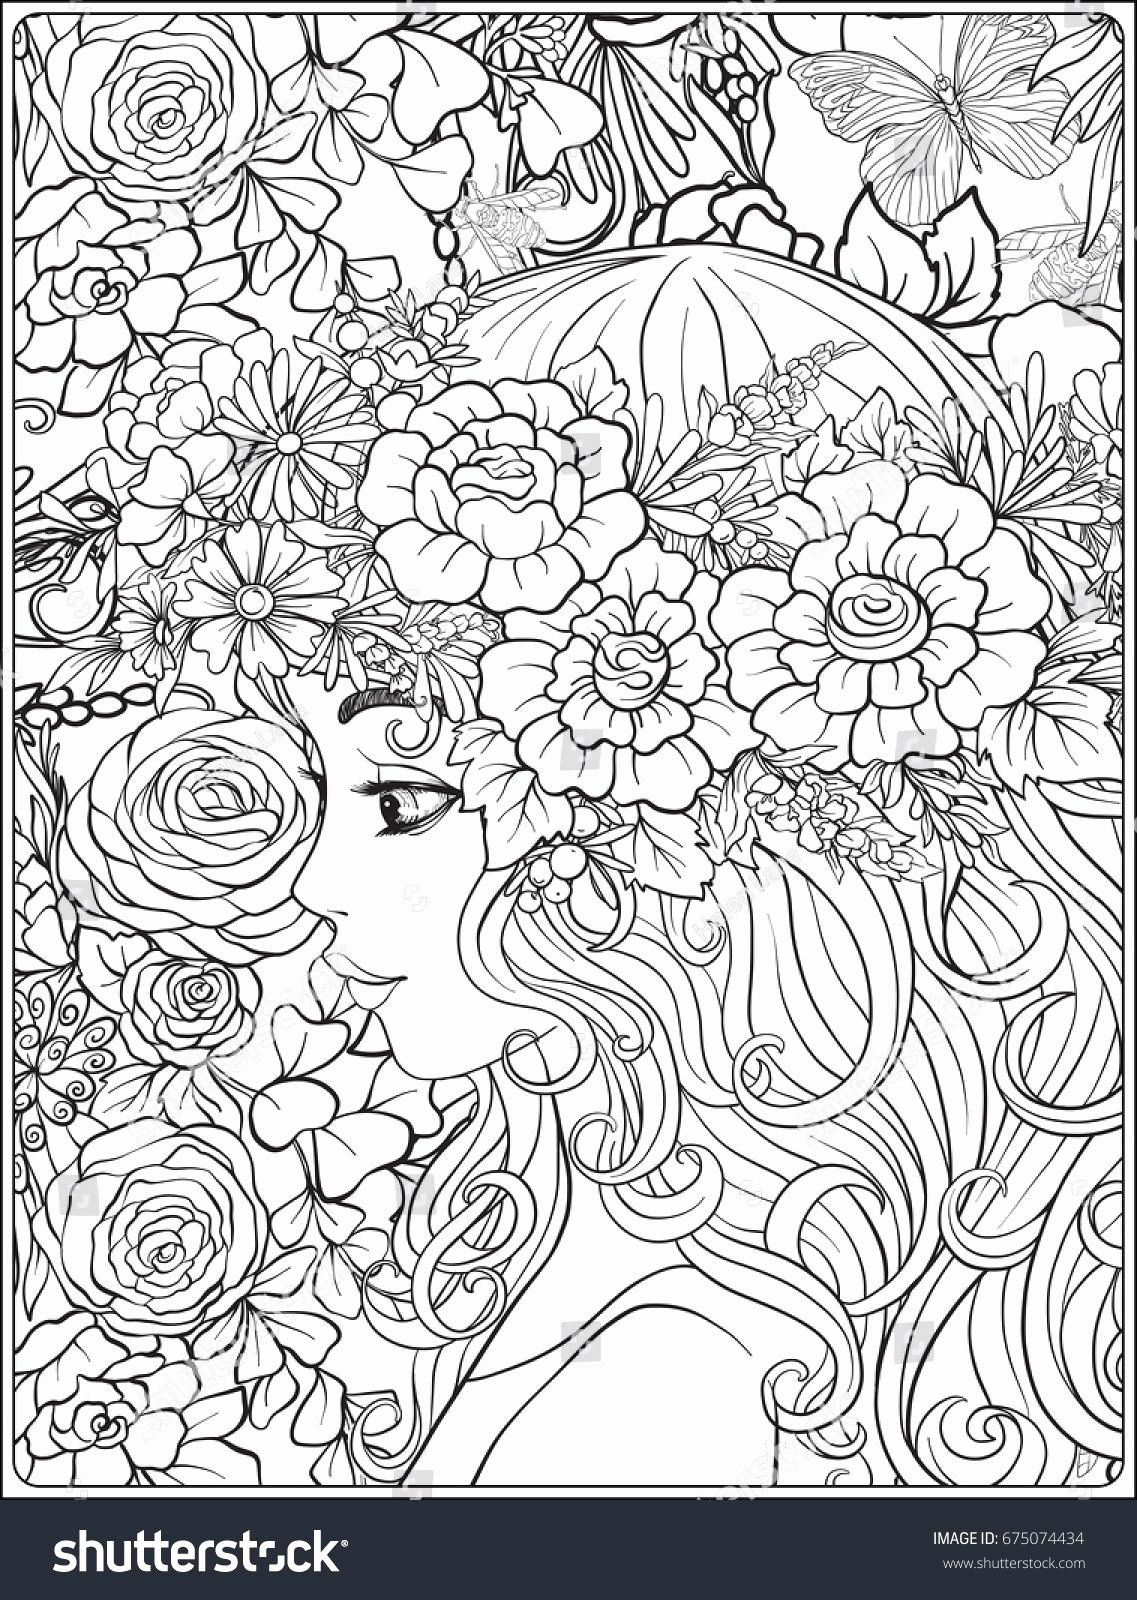 Printable Coloring Pages For Adults Flowers Elegant Coloring Flower Wreath Coloring Pageslts Animals Prin Cute Coloring Pages Coloring Pages Owl Coloring Pages